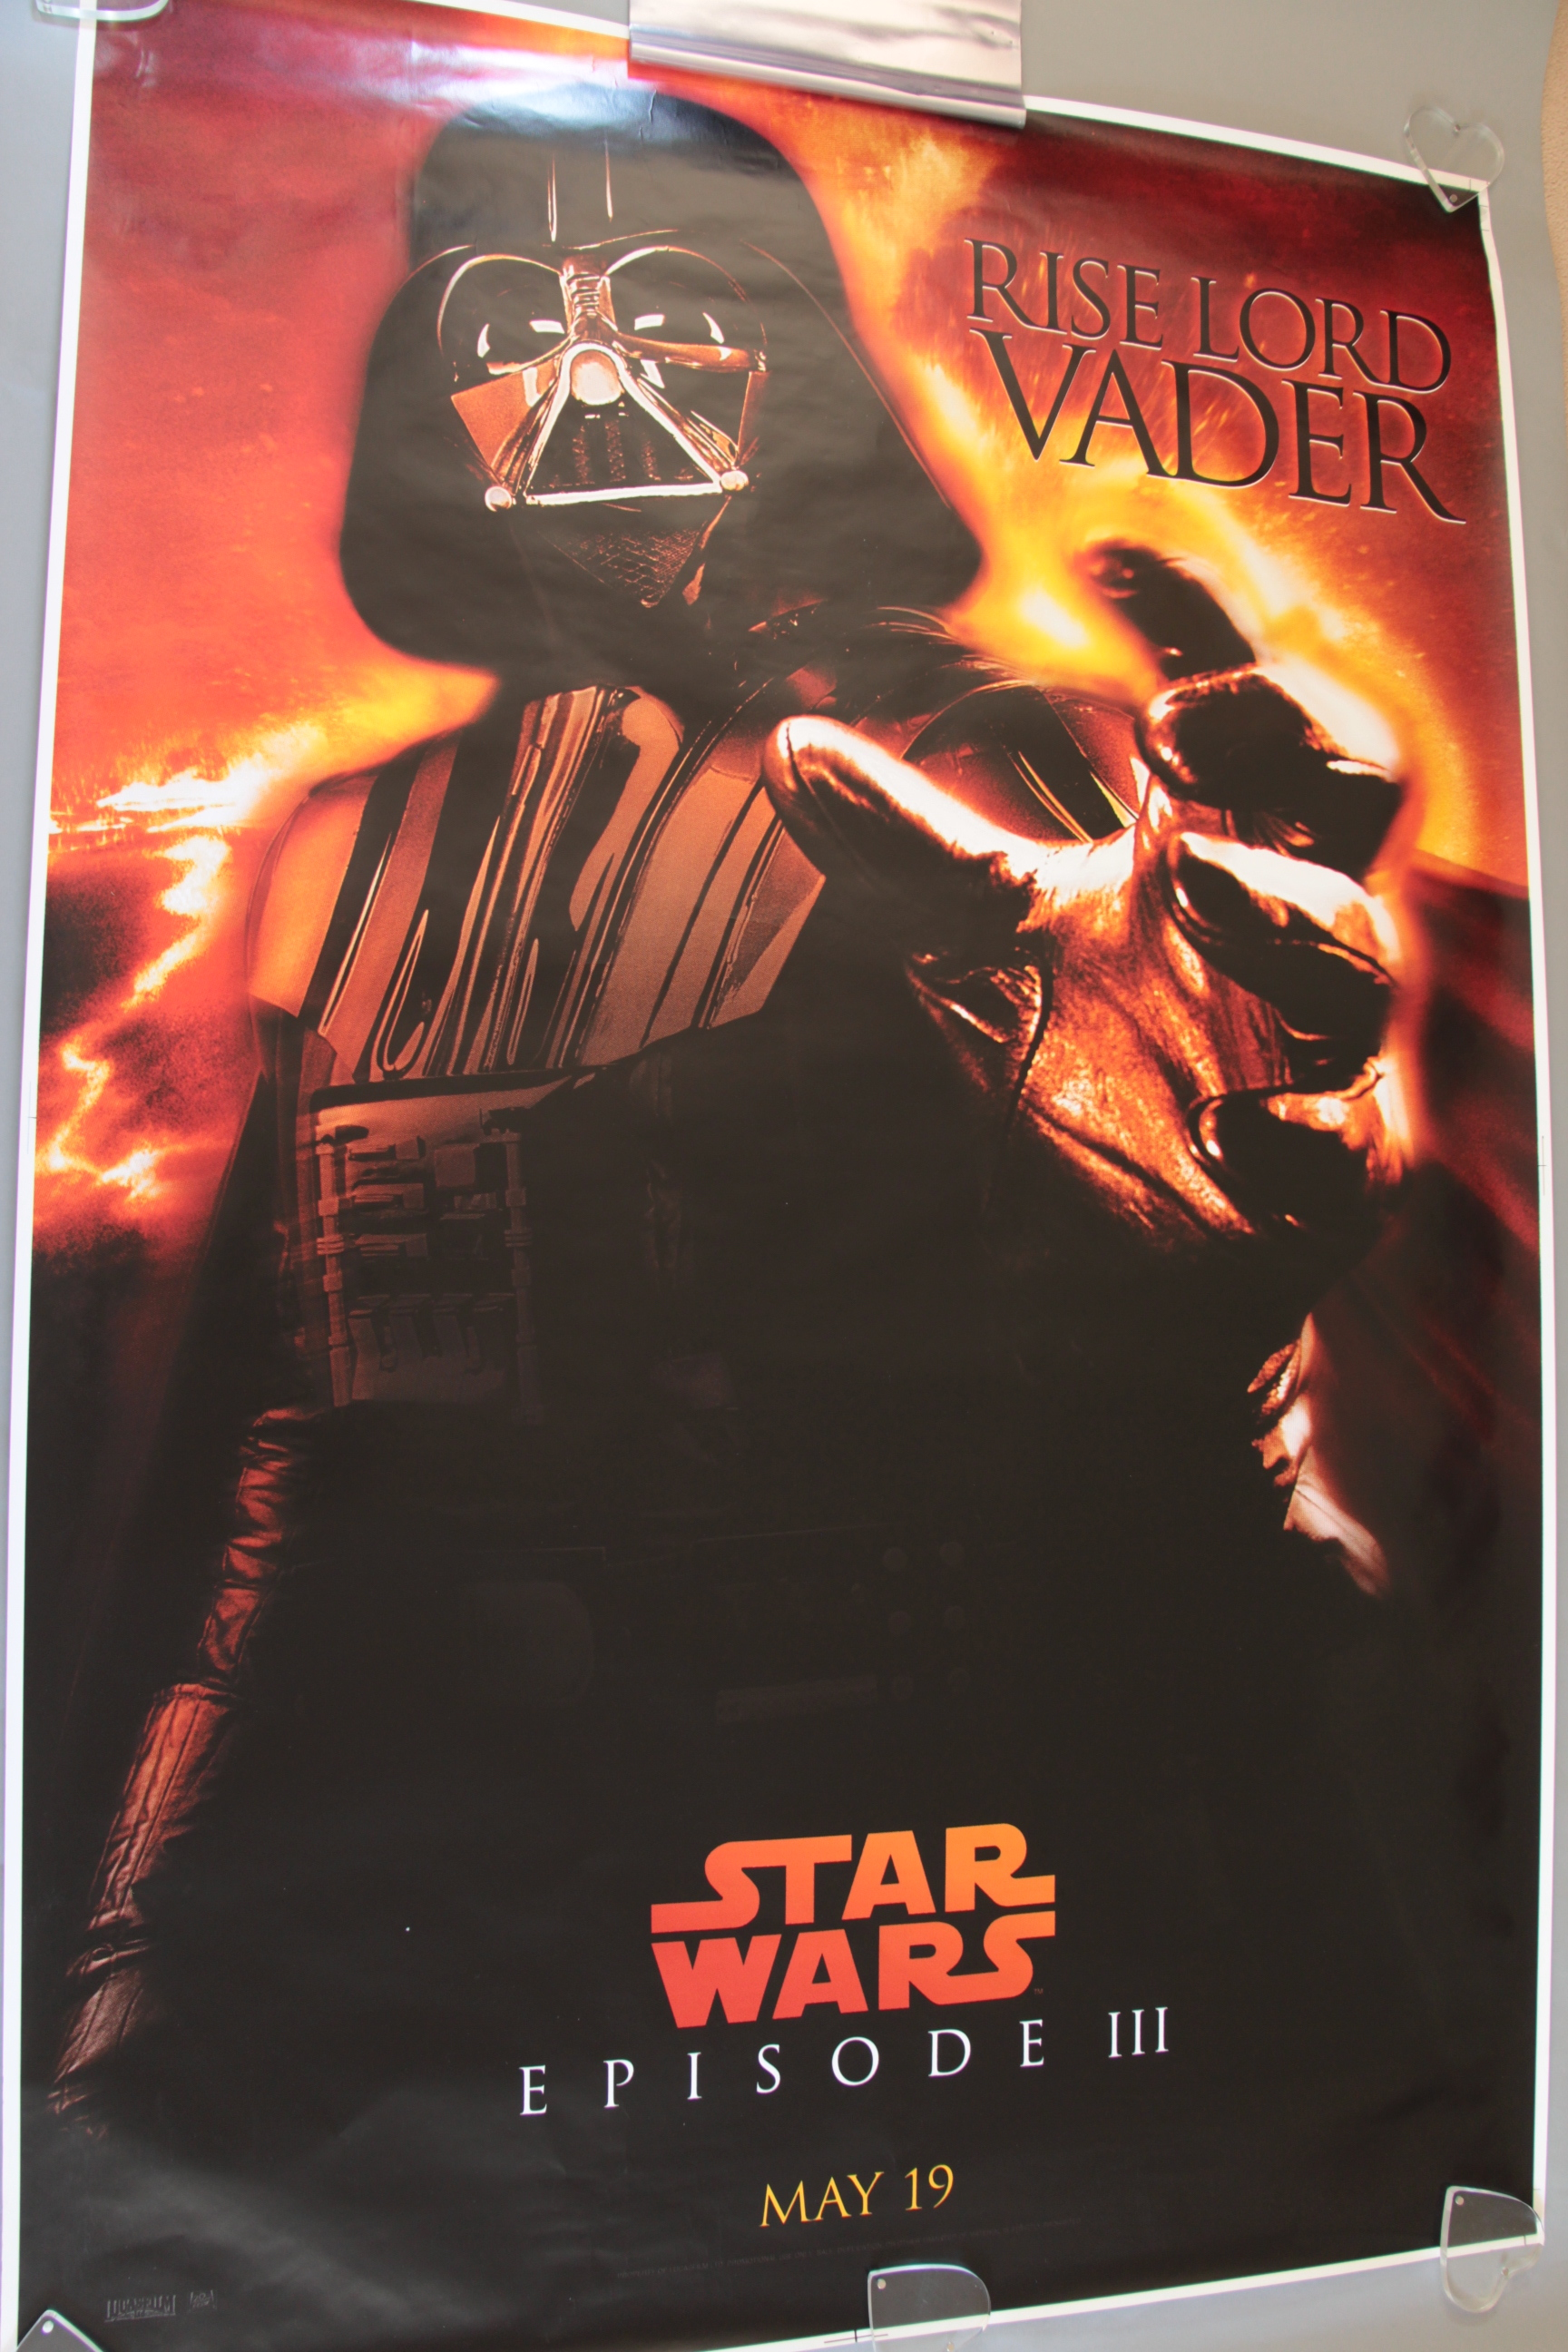 Lot 45 - Star Wars large cinema bus shelter posters inc Star Wars Episode II & III rolled condition